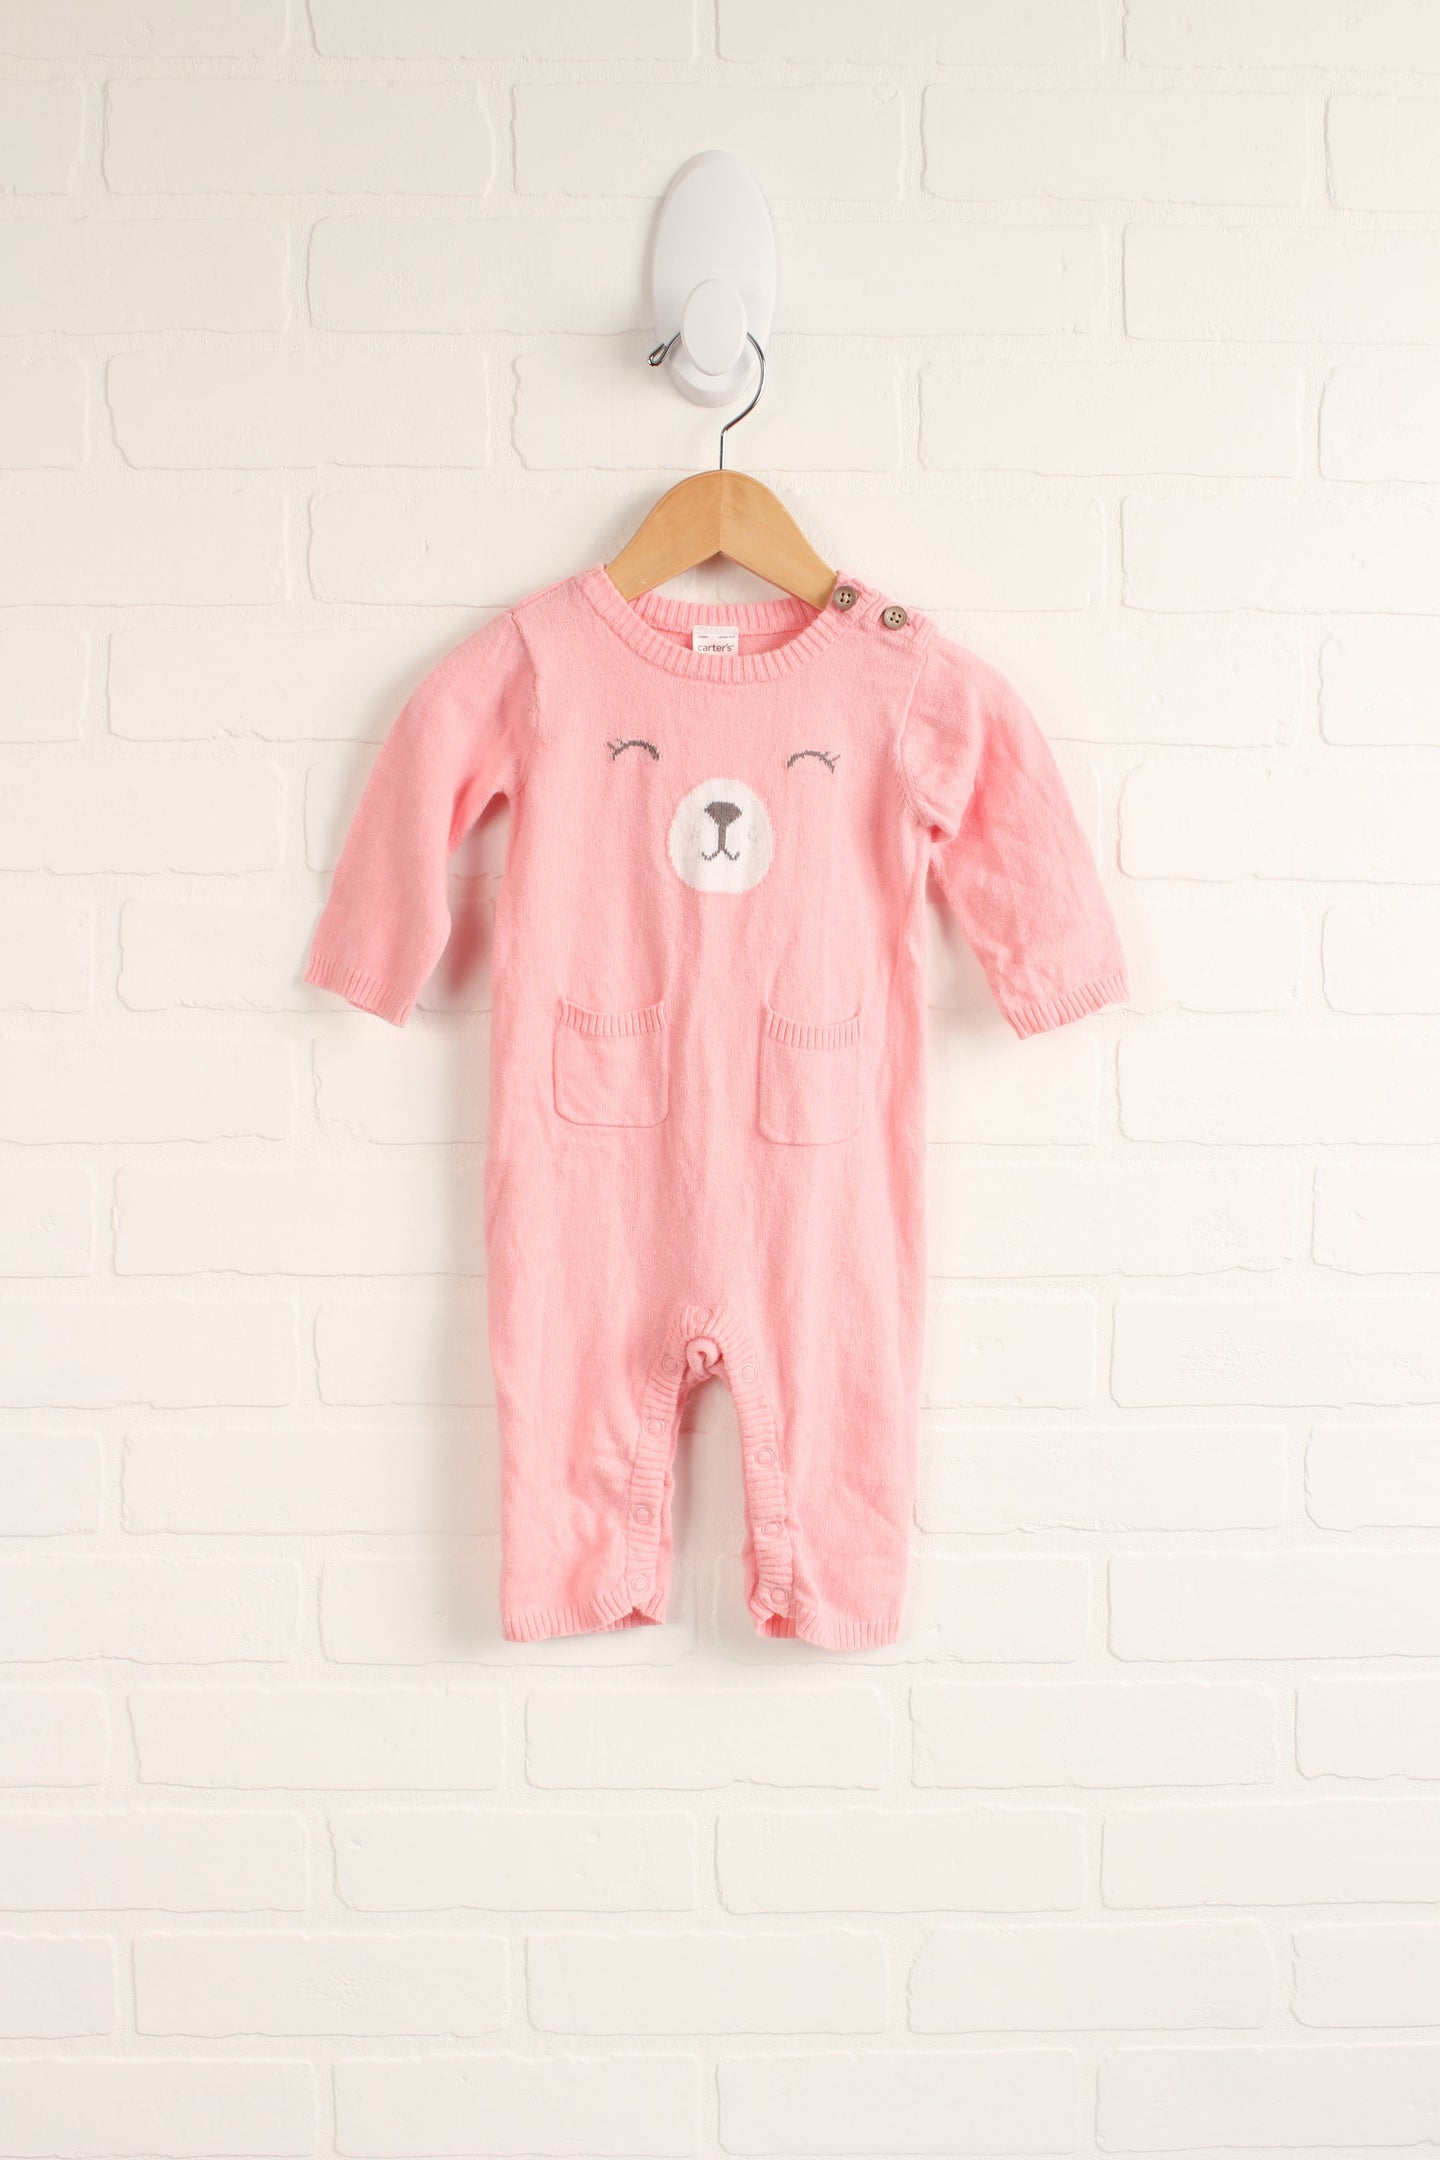 Pink Romper (Carter's Size 6M)